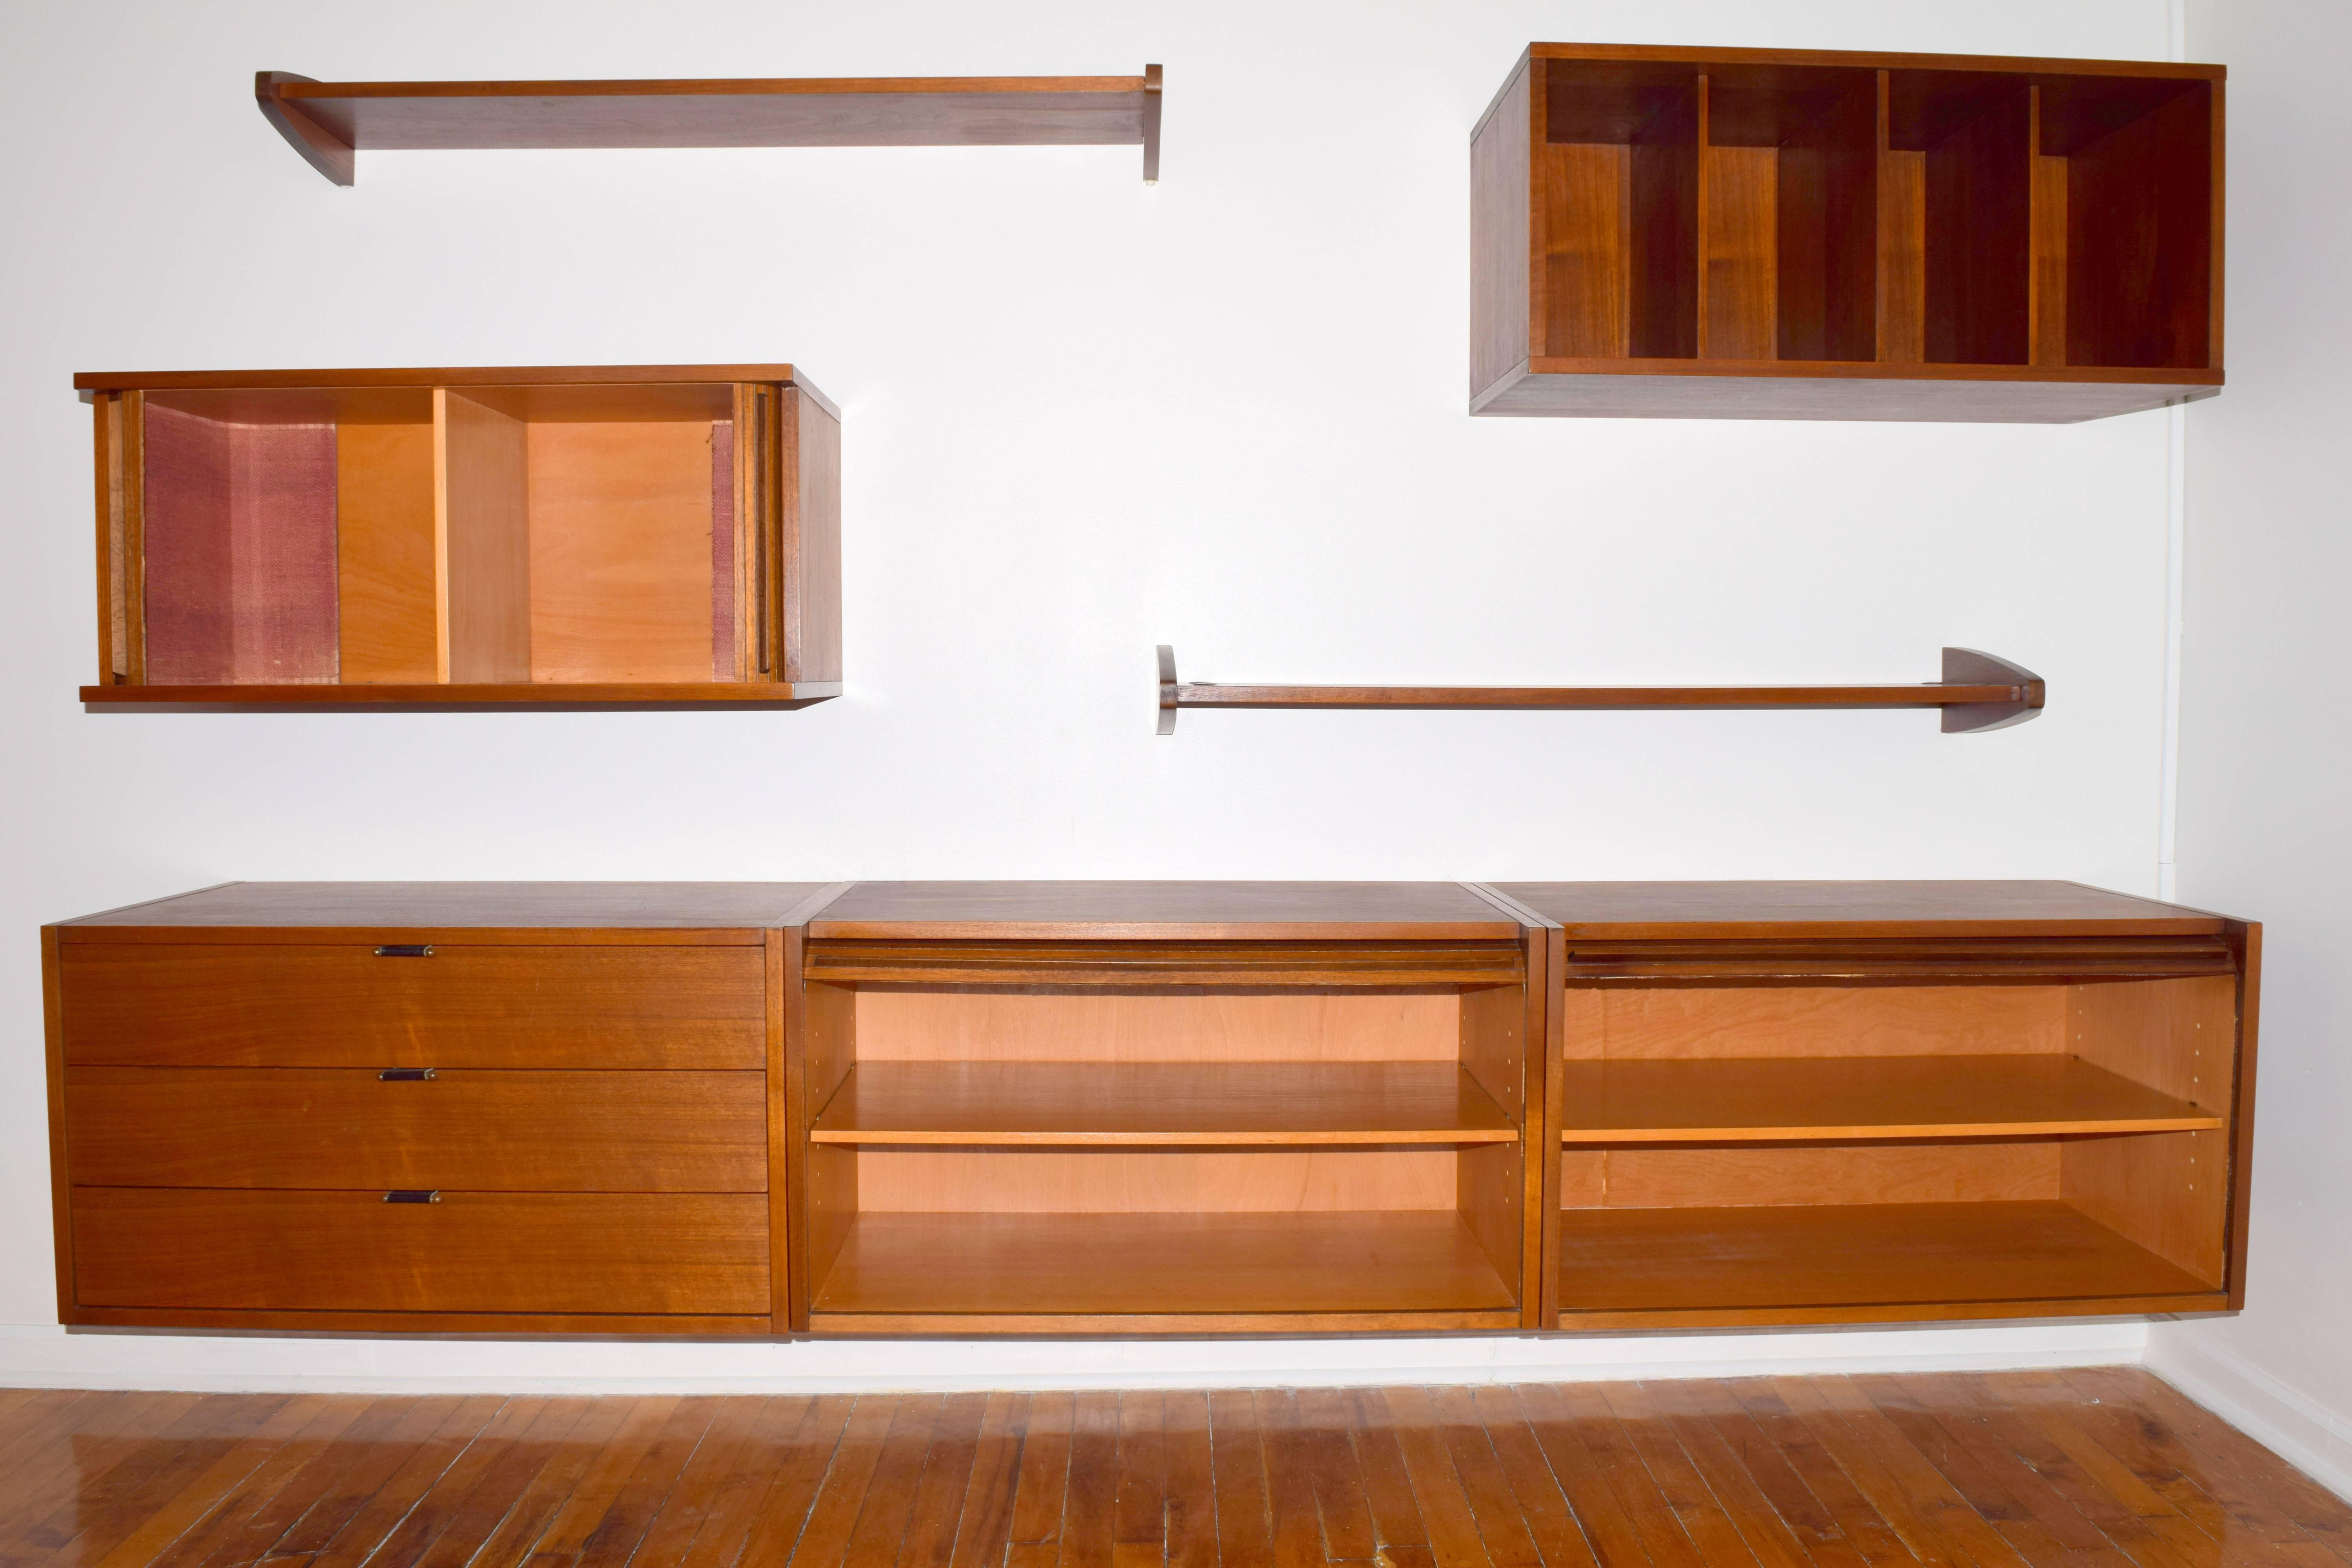 Fantastic Wall Mounted Floating Wall Unit In Walnut. Consisting Of Five  Cabinets Mounted Via